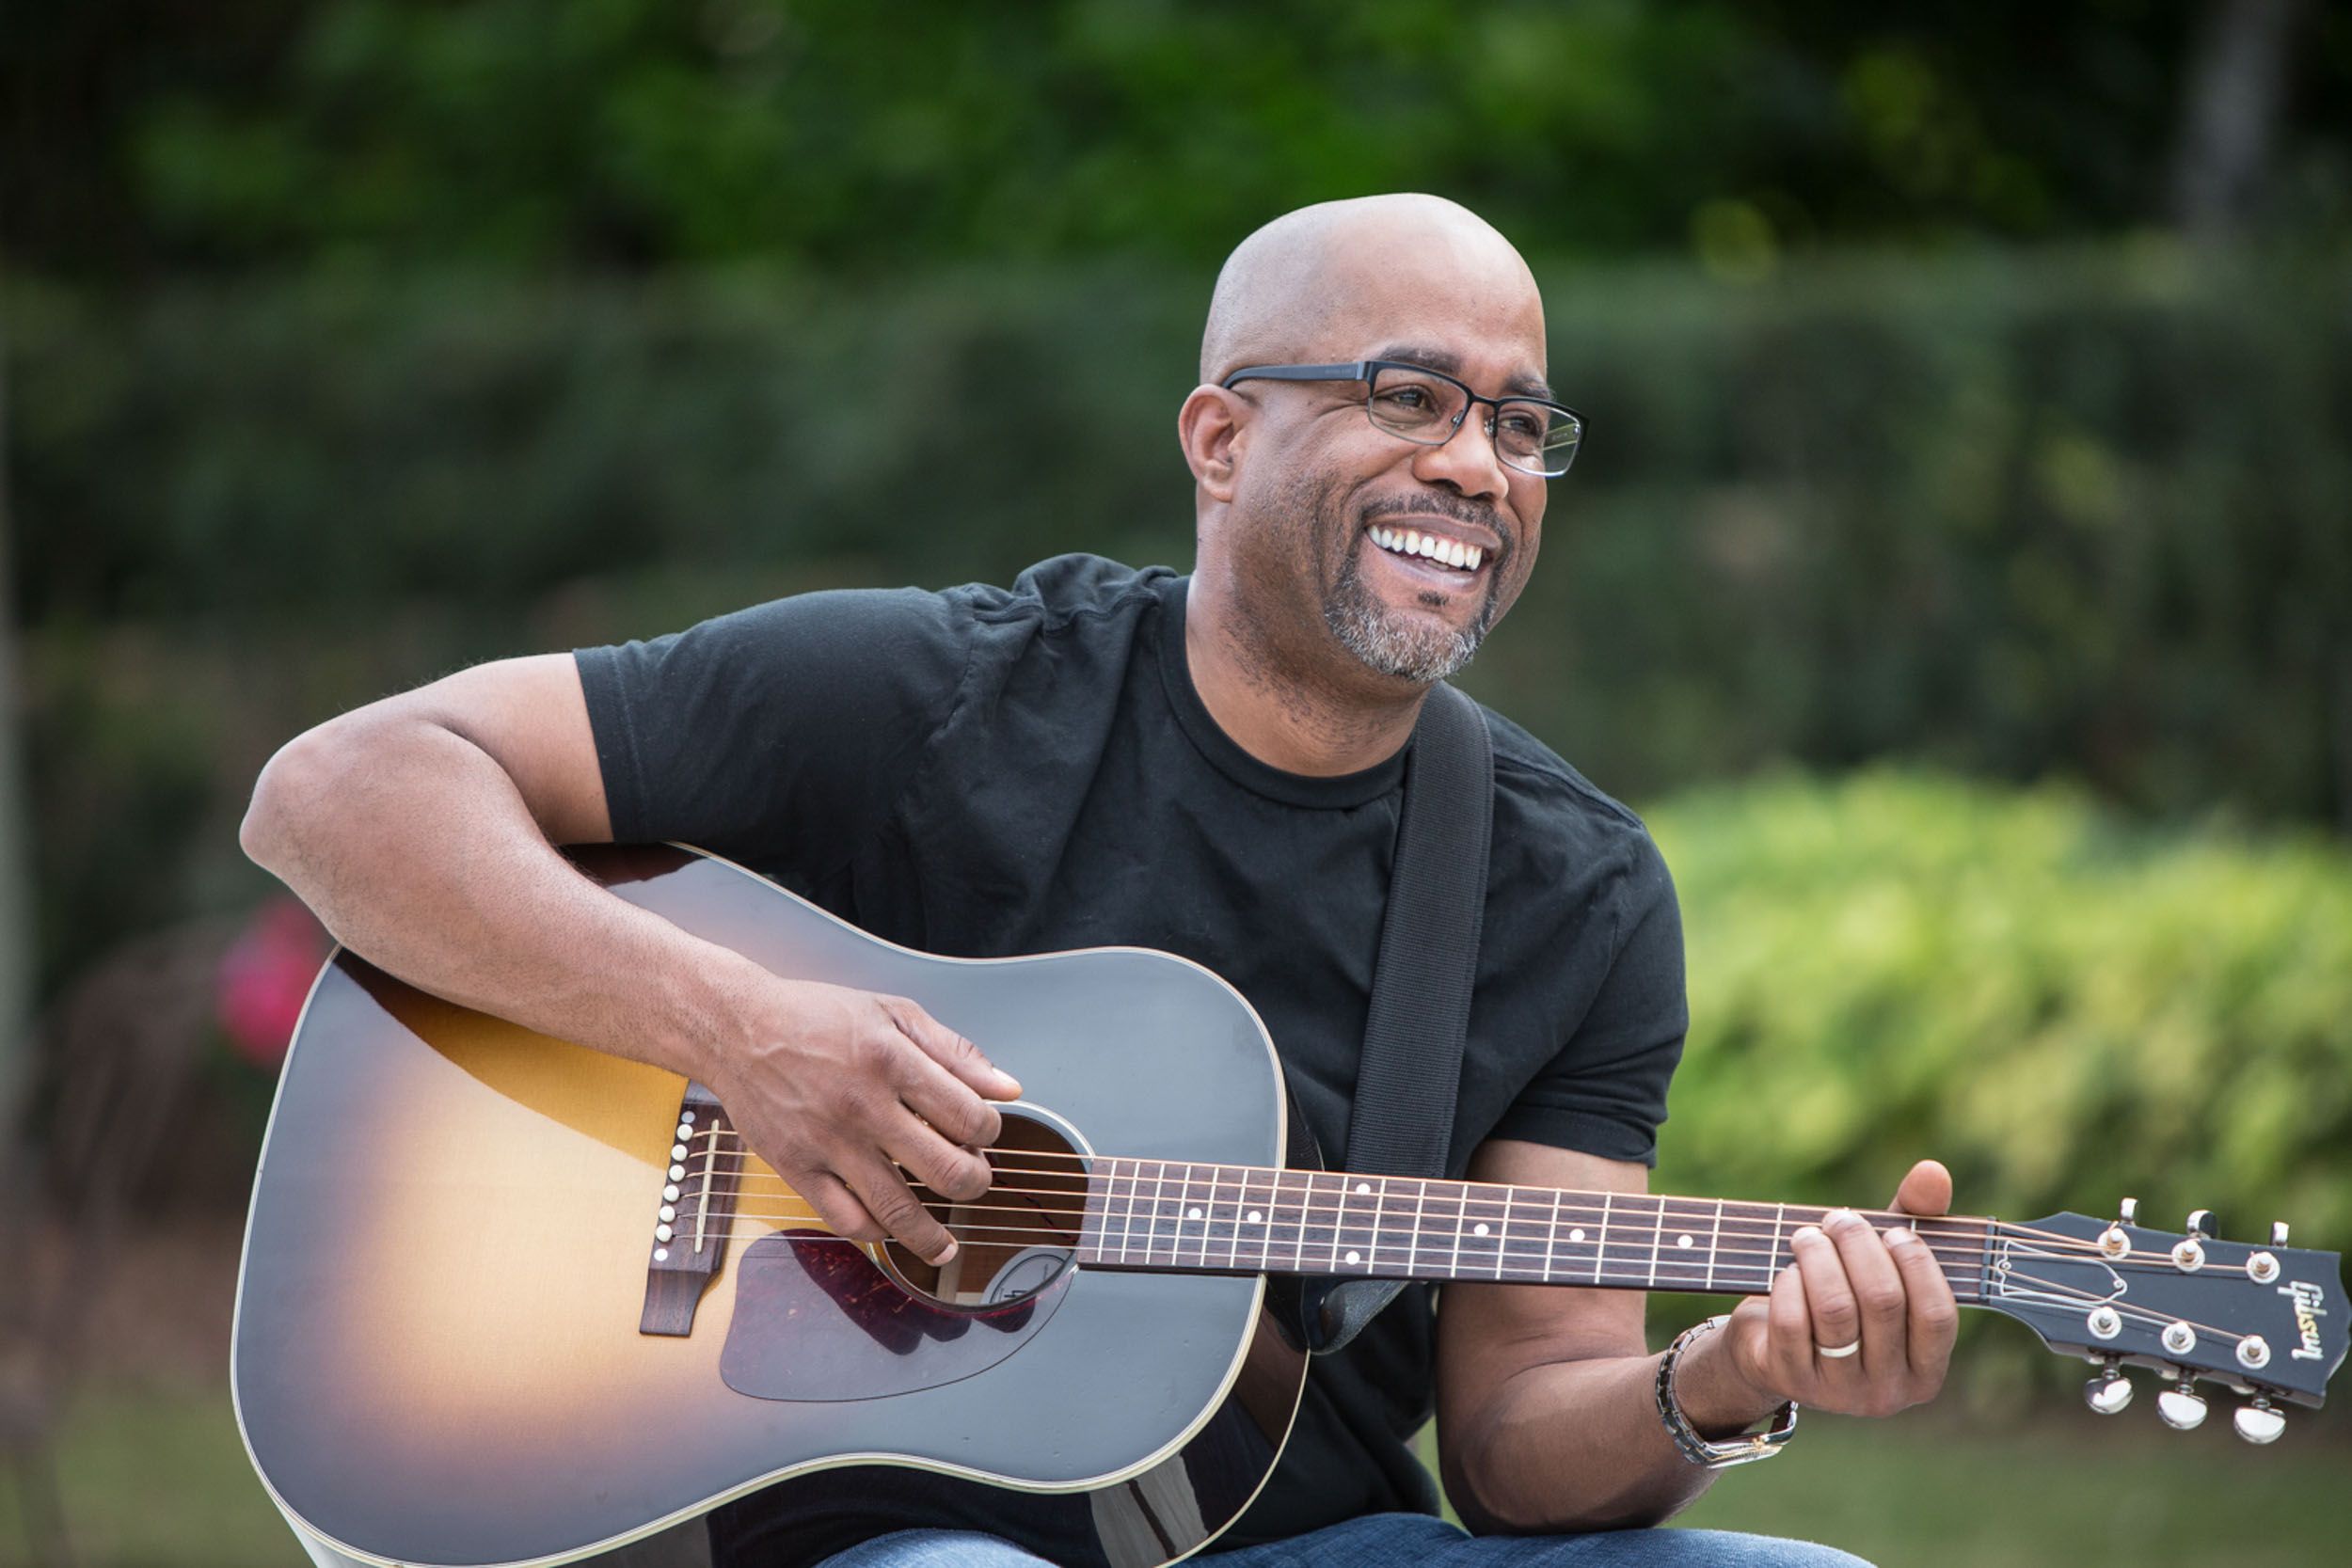 Florida Photography | Darius Rucker - Music and Celebrity | Steven Martine